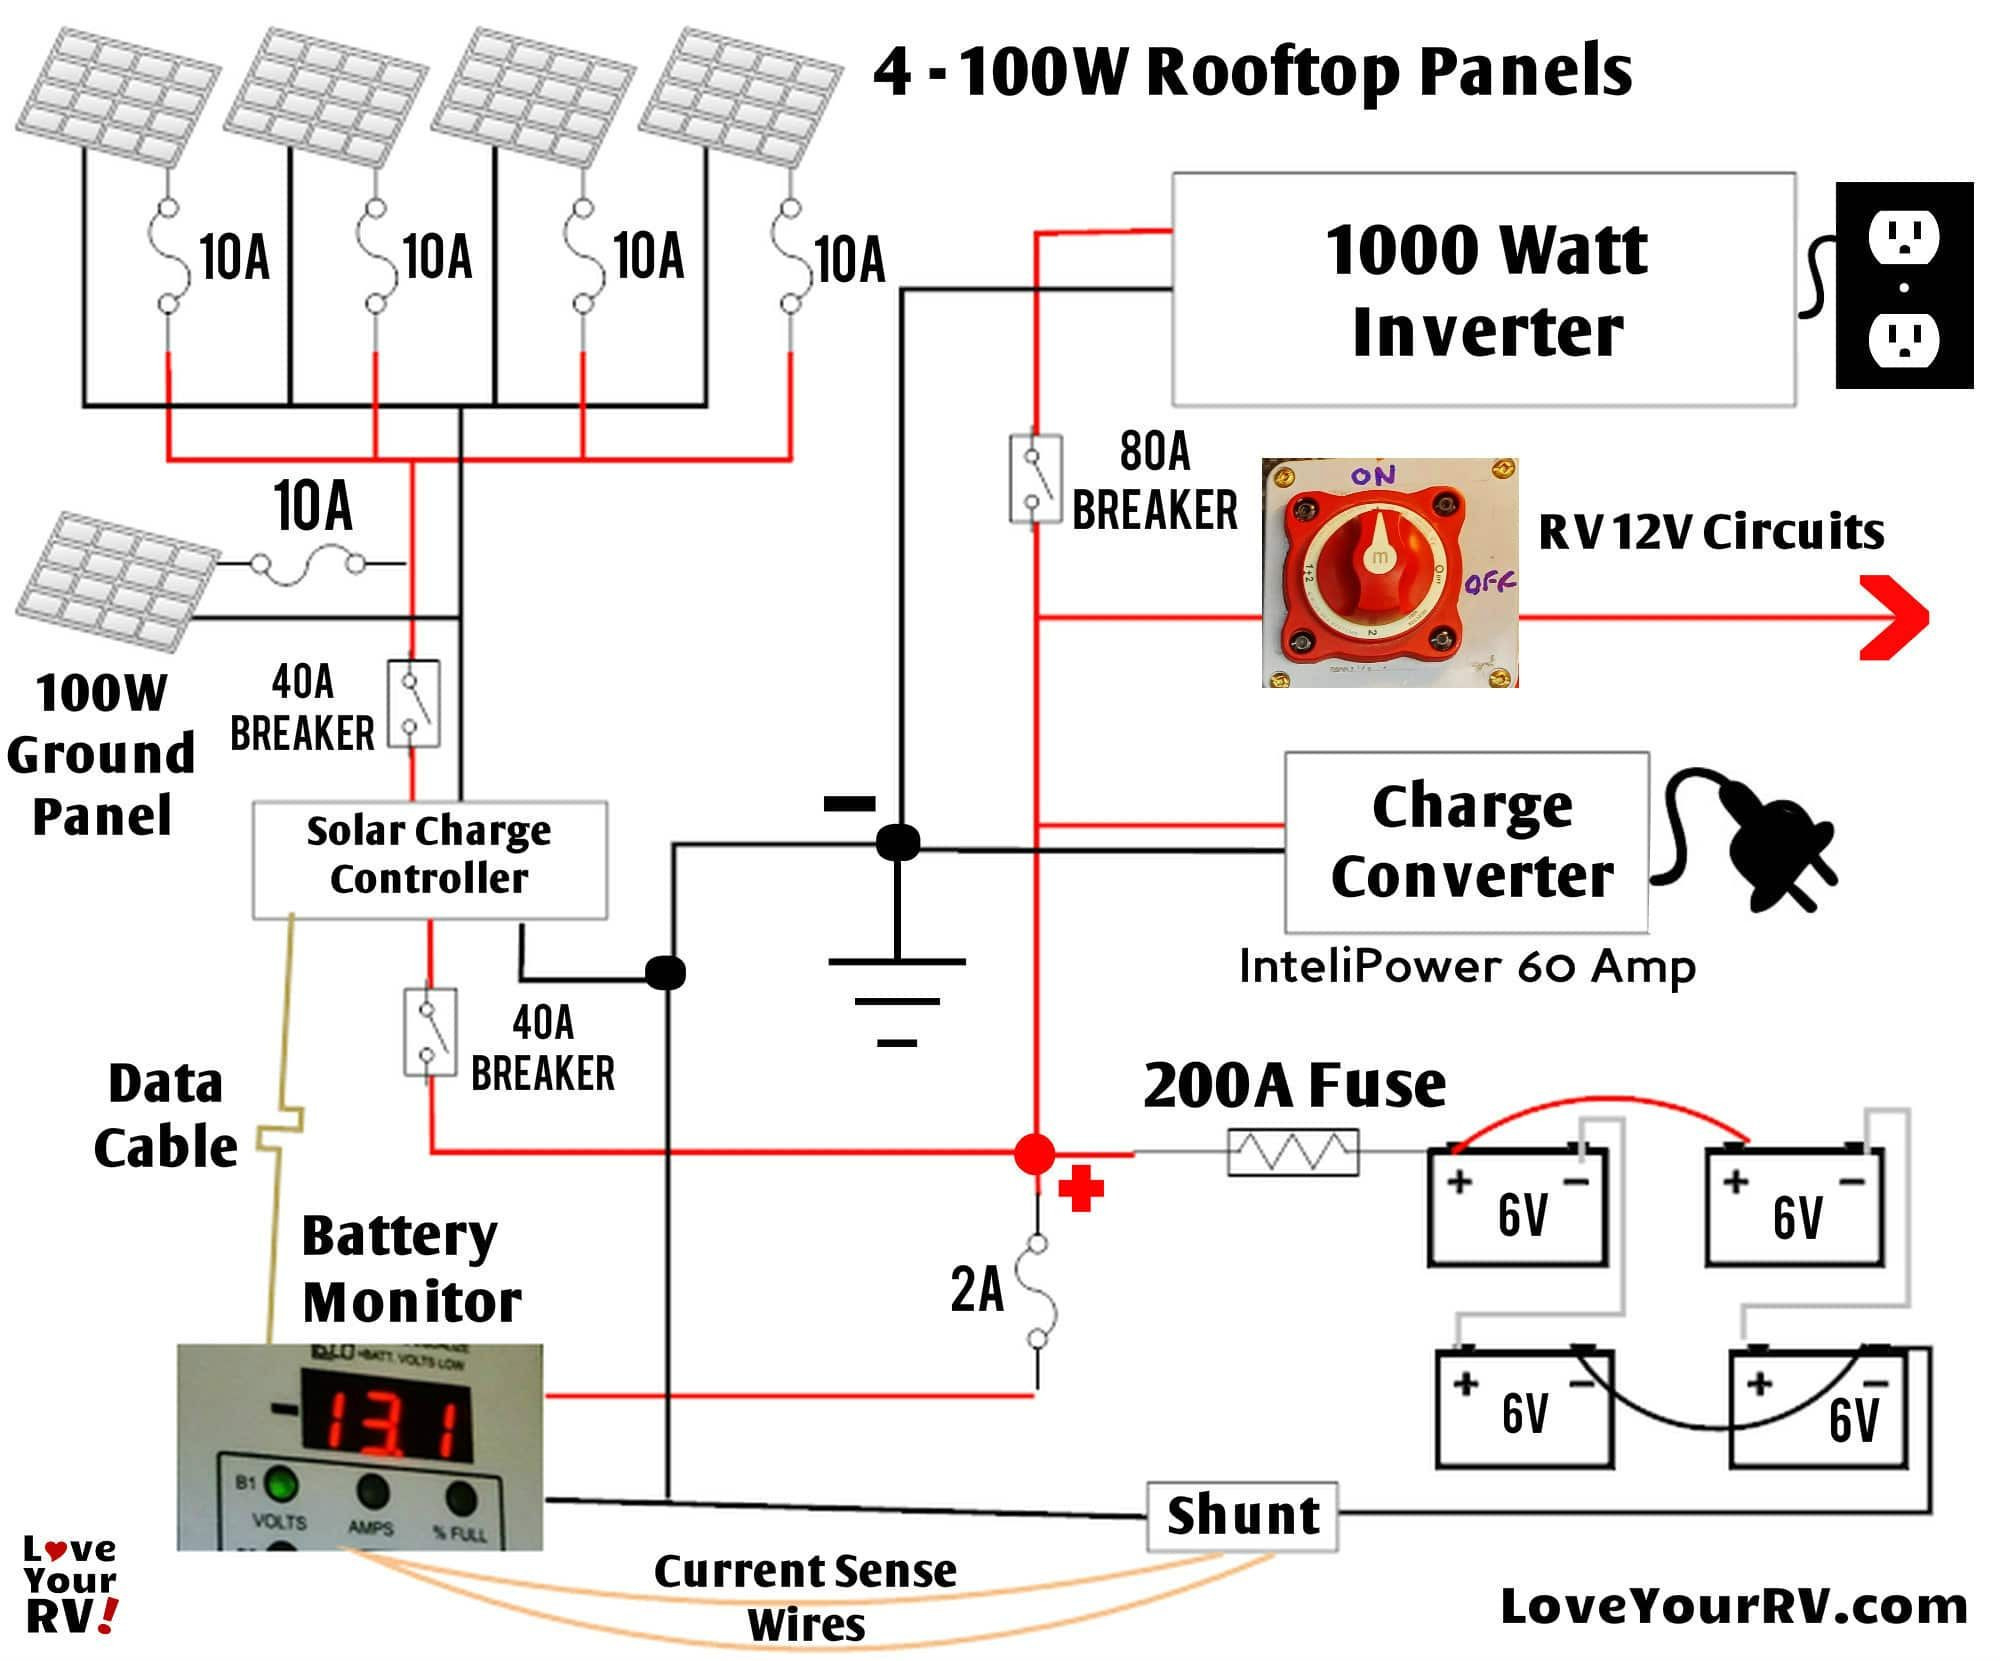 solar array wiring diagram Collection-Wiring Diagram solar Panel System New Detailed Look at Our Diy Rv Boondocking Power System 3-j